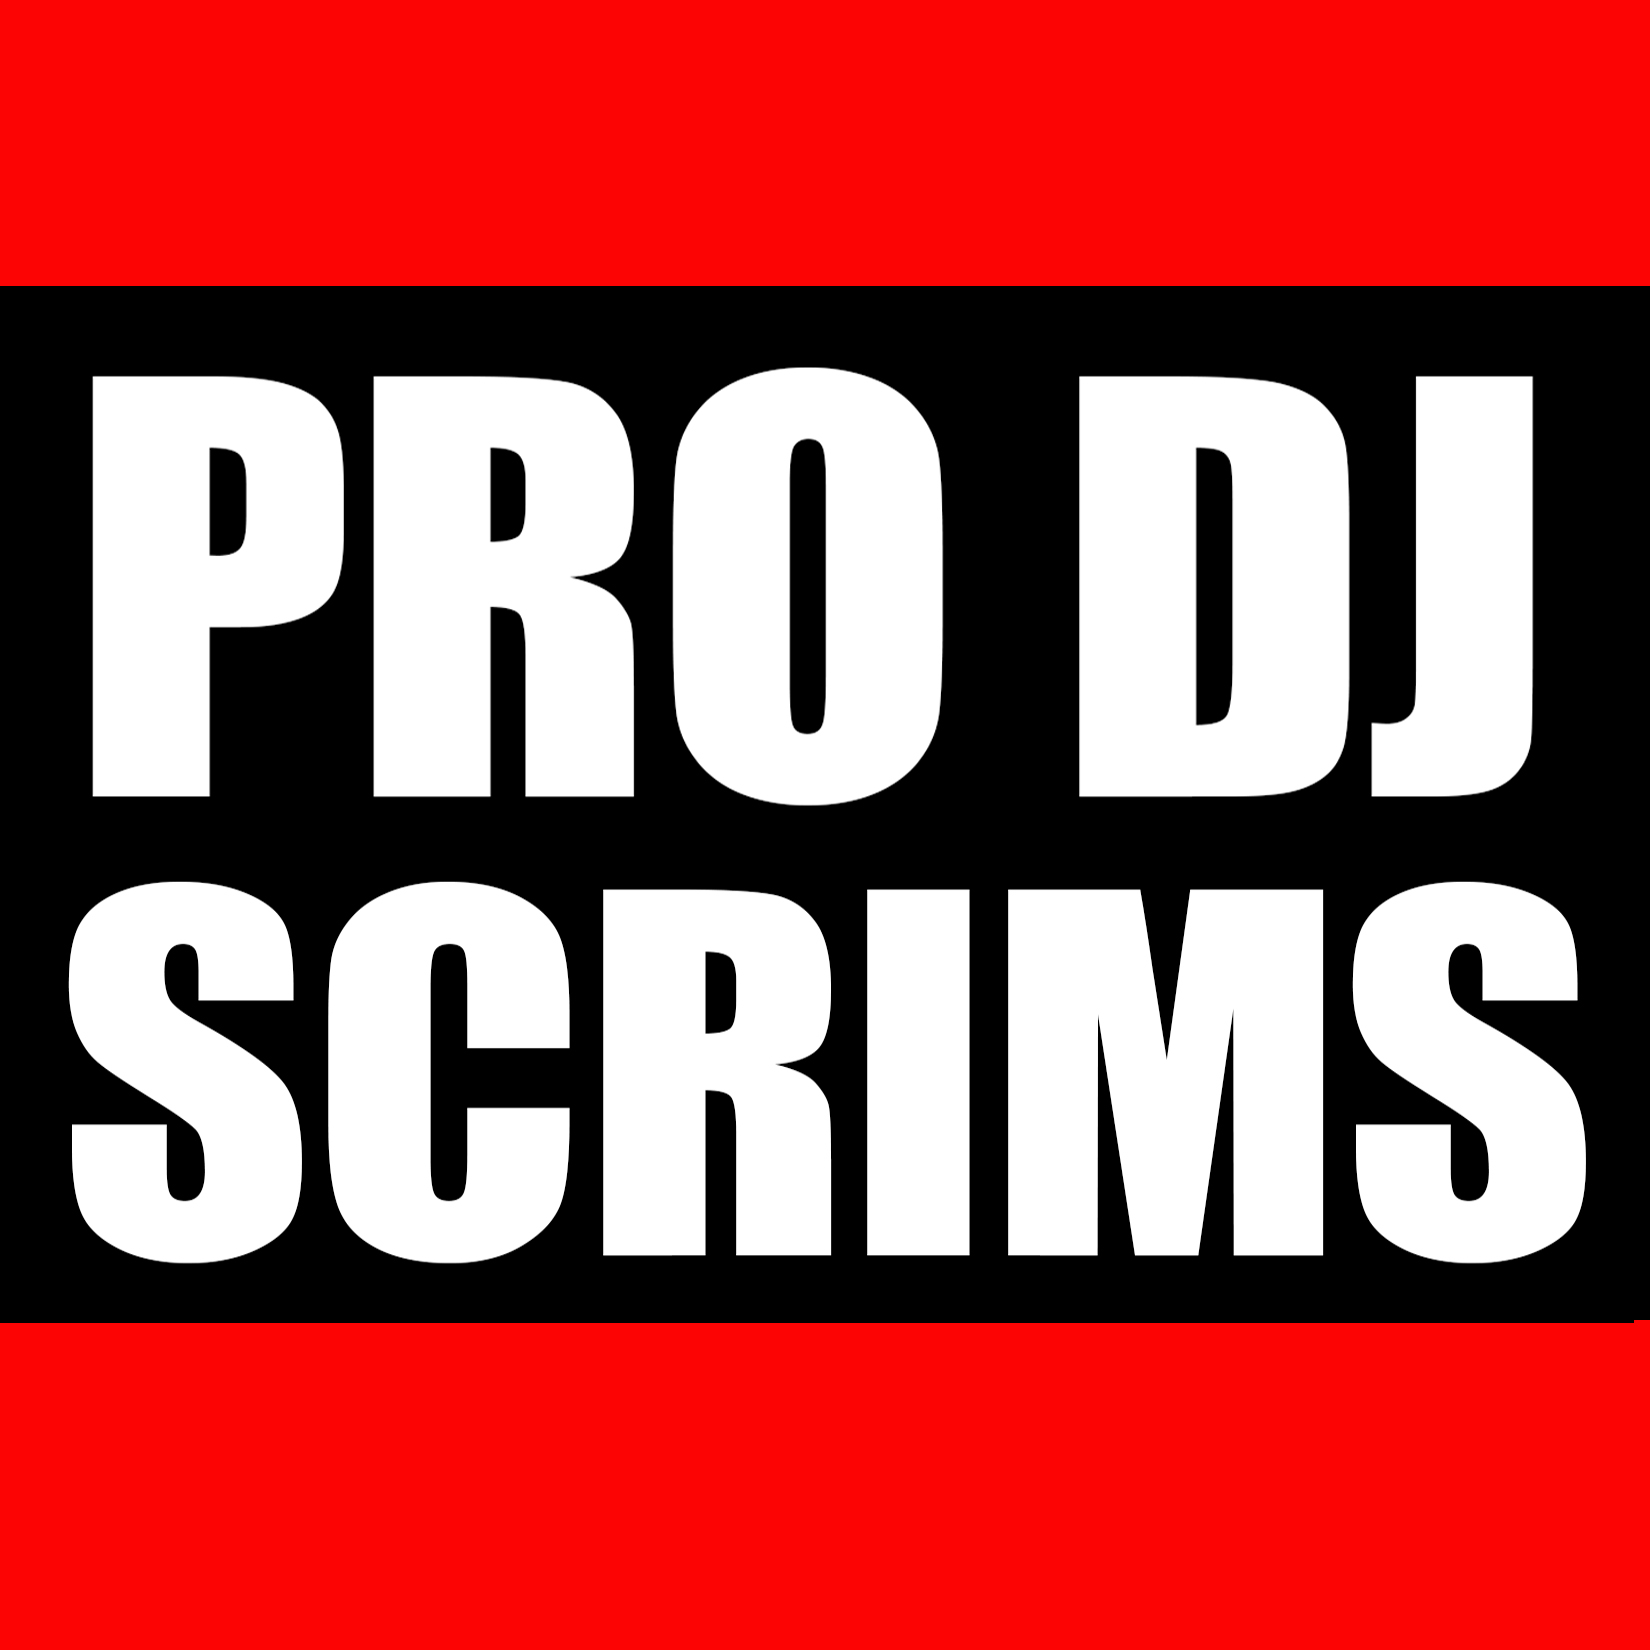 Amazin Gear Professional DJ Products - SKRIMS Stretch Triple Pack in Action - 2 SKRIMS Tripod Covers and 1 SKRIMS Stretch Table Cover